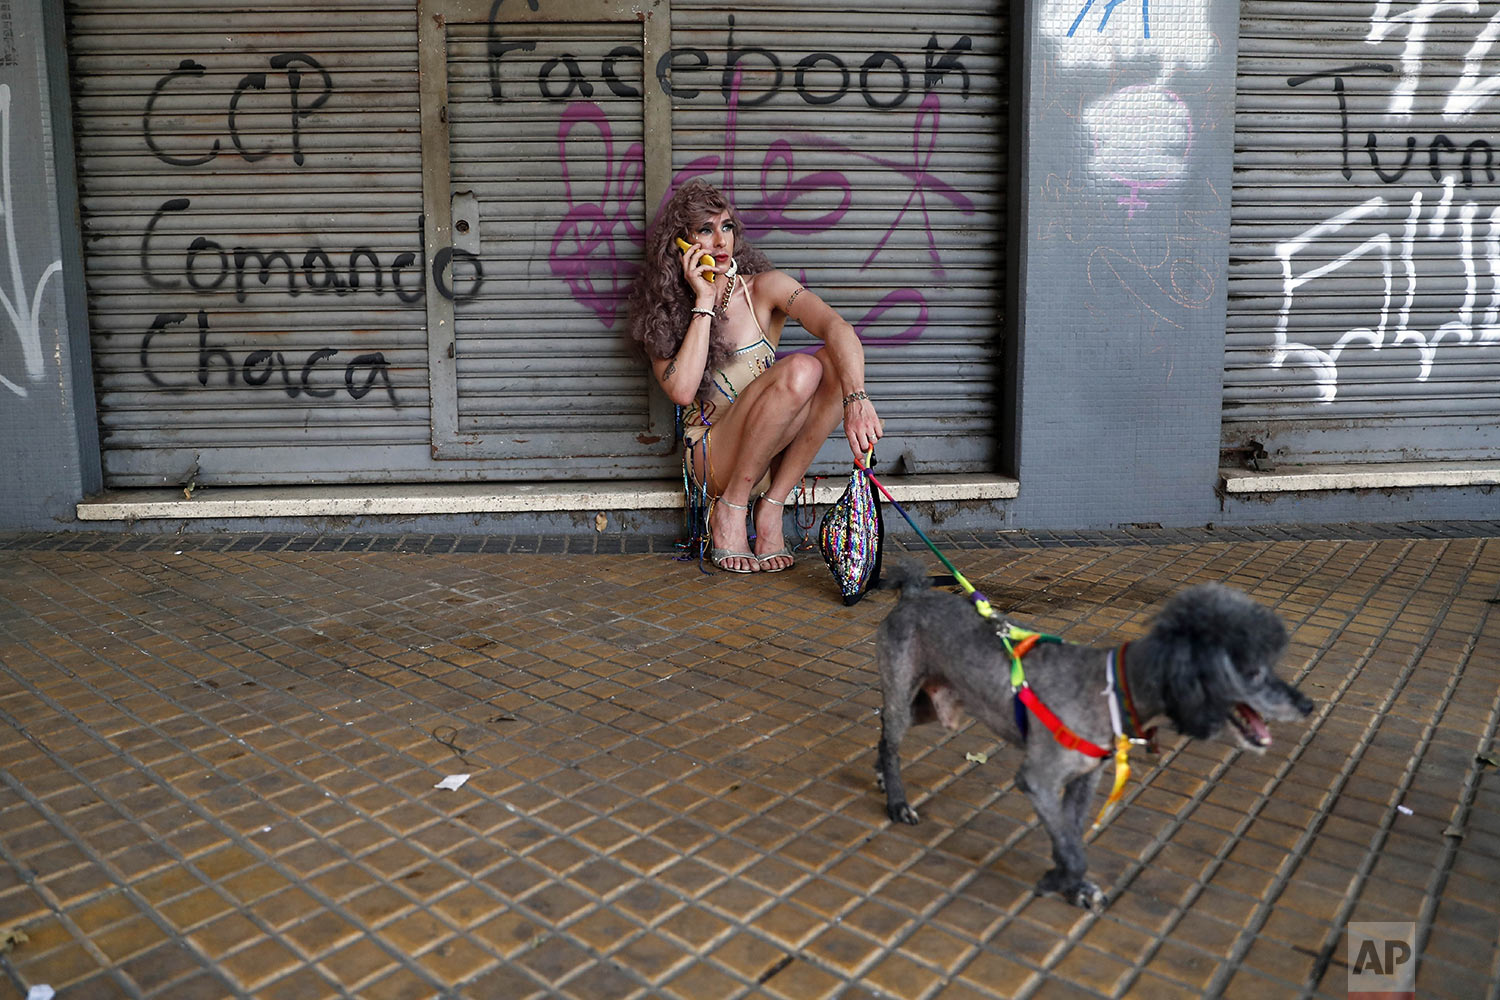 A trans woman takes a call on the sidelines of the LGTBI march in Asuncion, Paraguay, Saturday, Sept. 28, 2019. The marchers are requesting the government approve the legal name changes from male to female of trans members in their community. Paraguay is one of the most sexually conservative countries in Latin America. (AP Photo/Jorge Saenz)